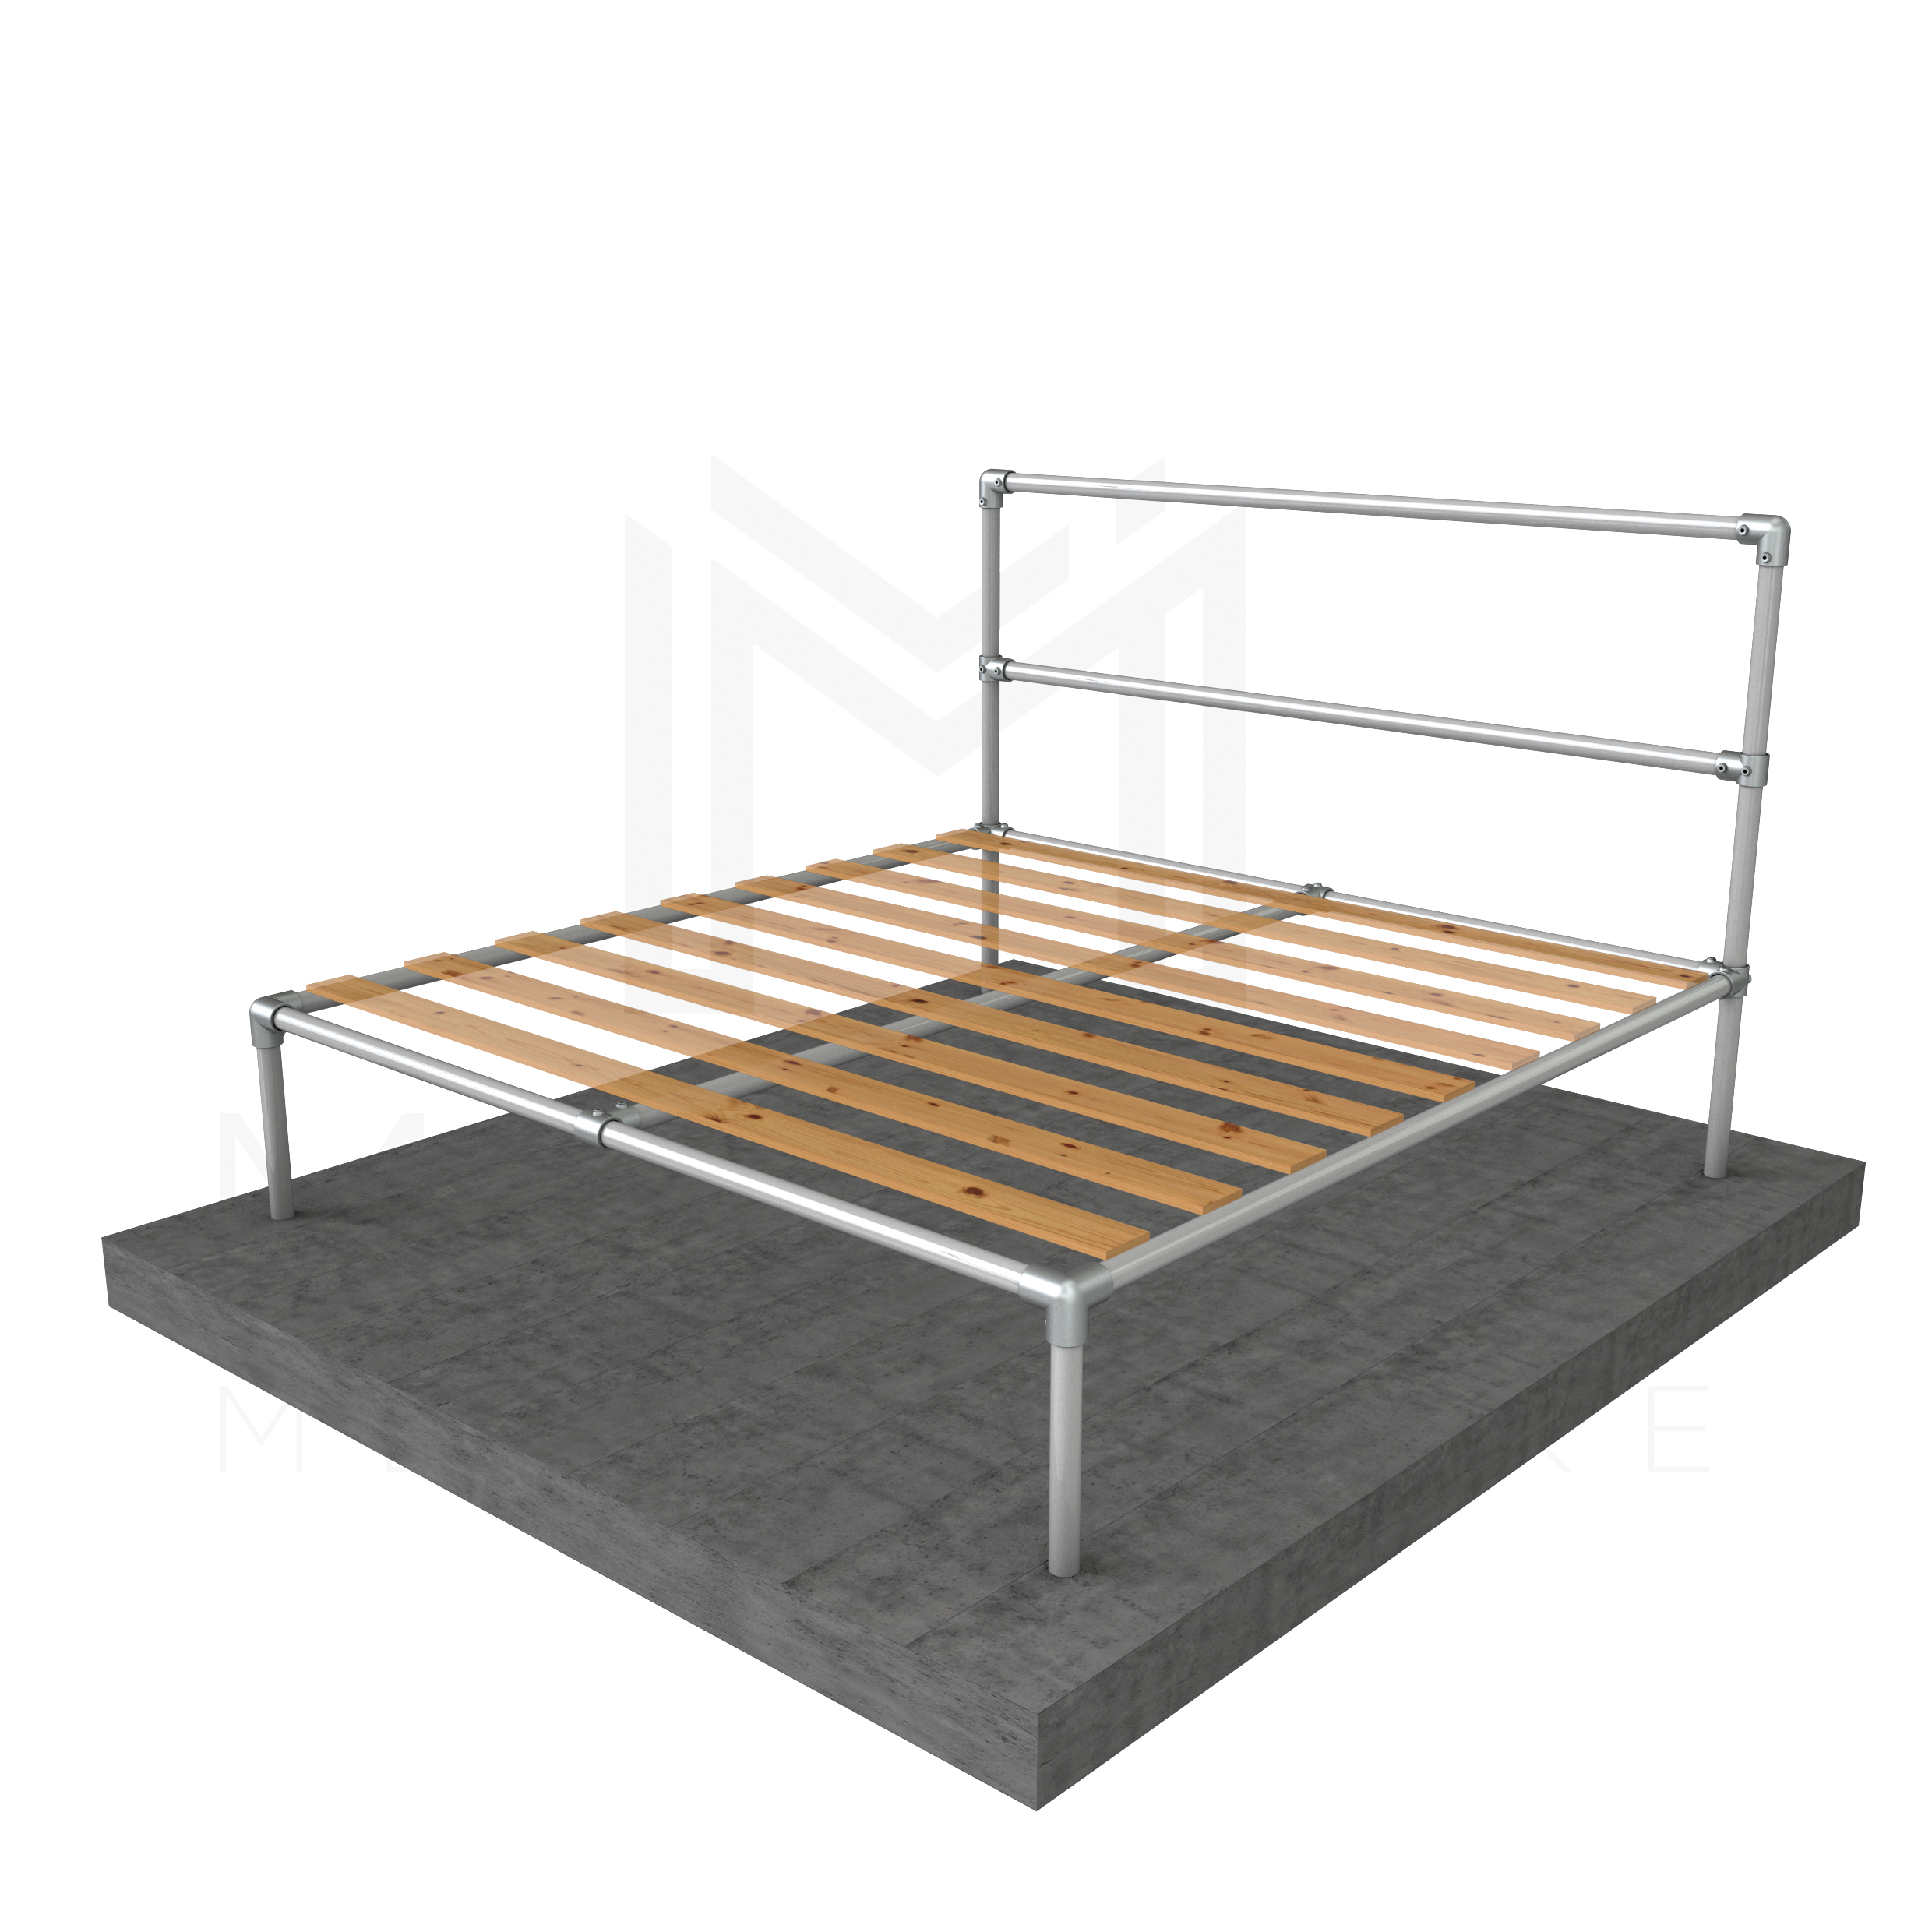 King size bed basic frame modular metal store for Basic twin bed frame